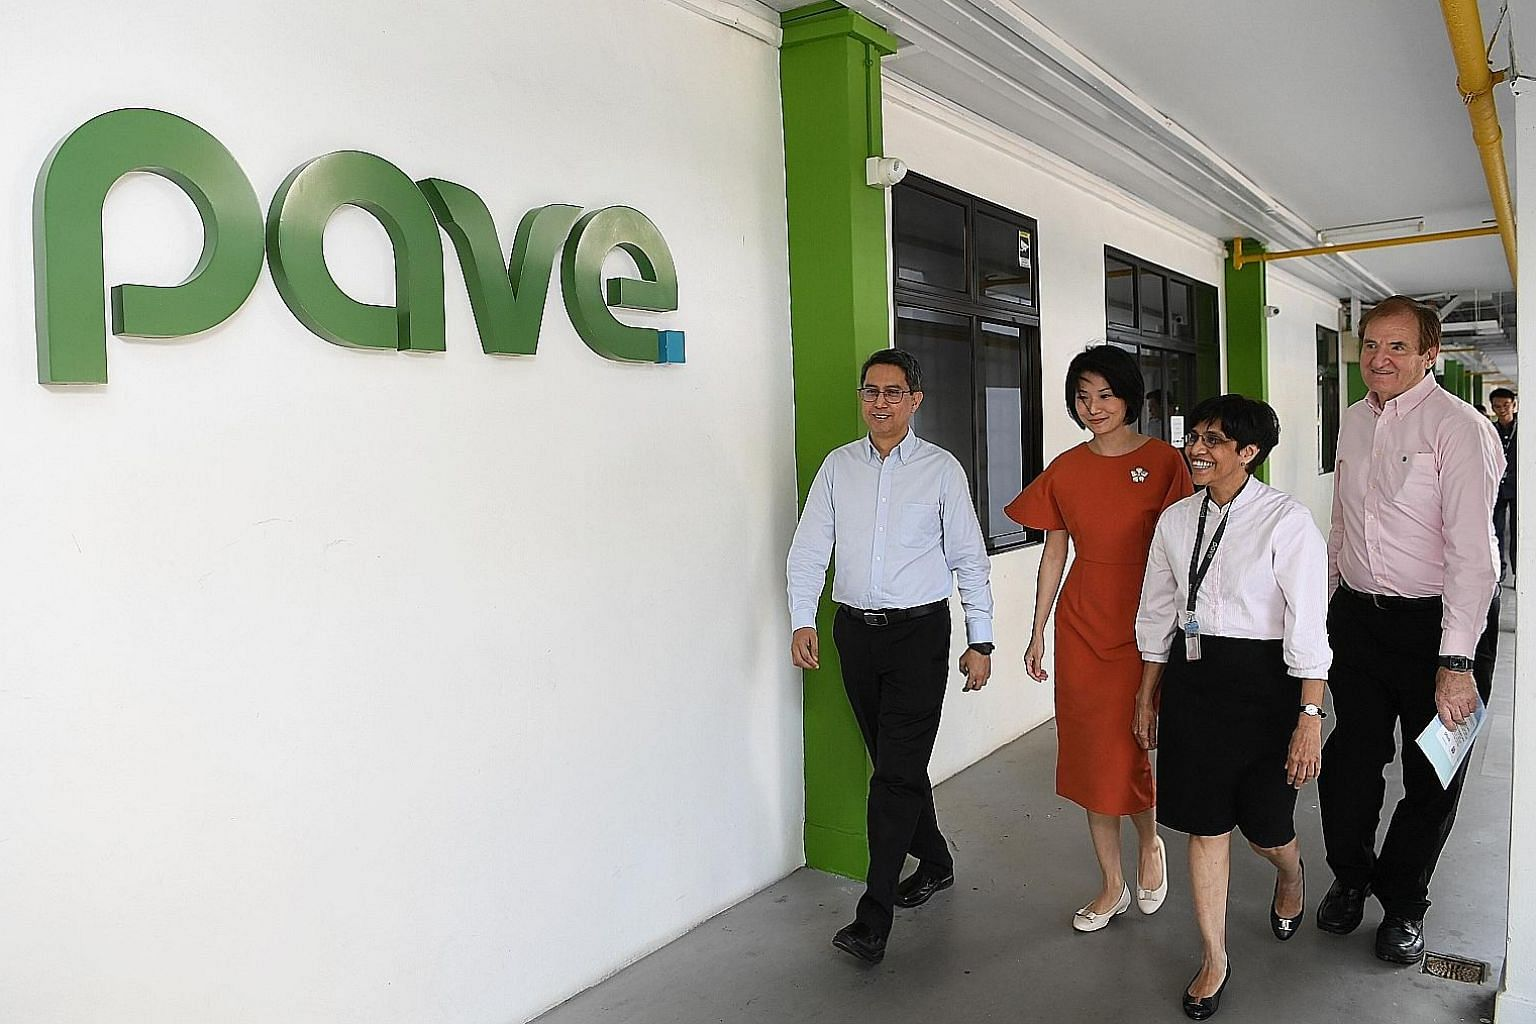 (From left) Senior Parliamentary Secretary for Social and Family Development Muhammad Faishal Ibrahim and Senior Parliamentary Secretary for Home Affairs Sun Xueling, with Pave's executive director Sudha Nair and president Michael Gray at the centre'